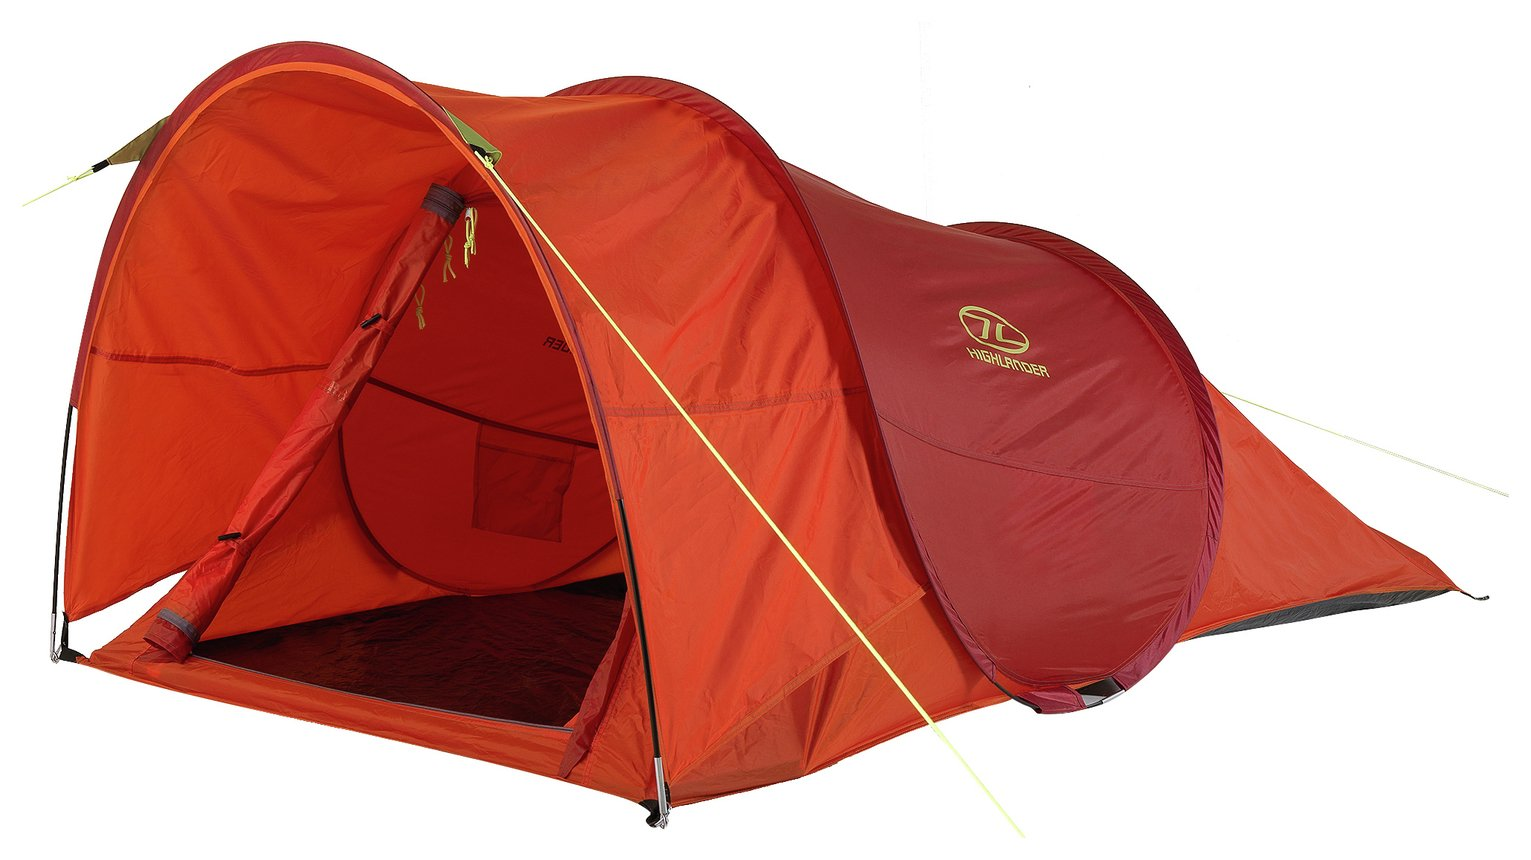 Highlander 2 Man 1 Room Pop Up Tent with Awning